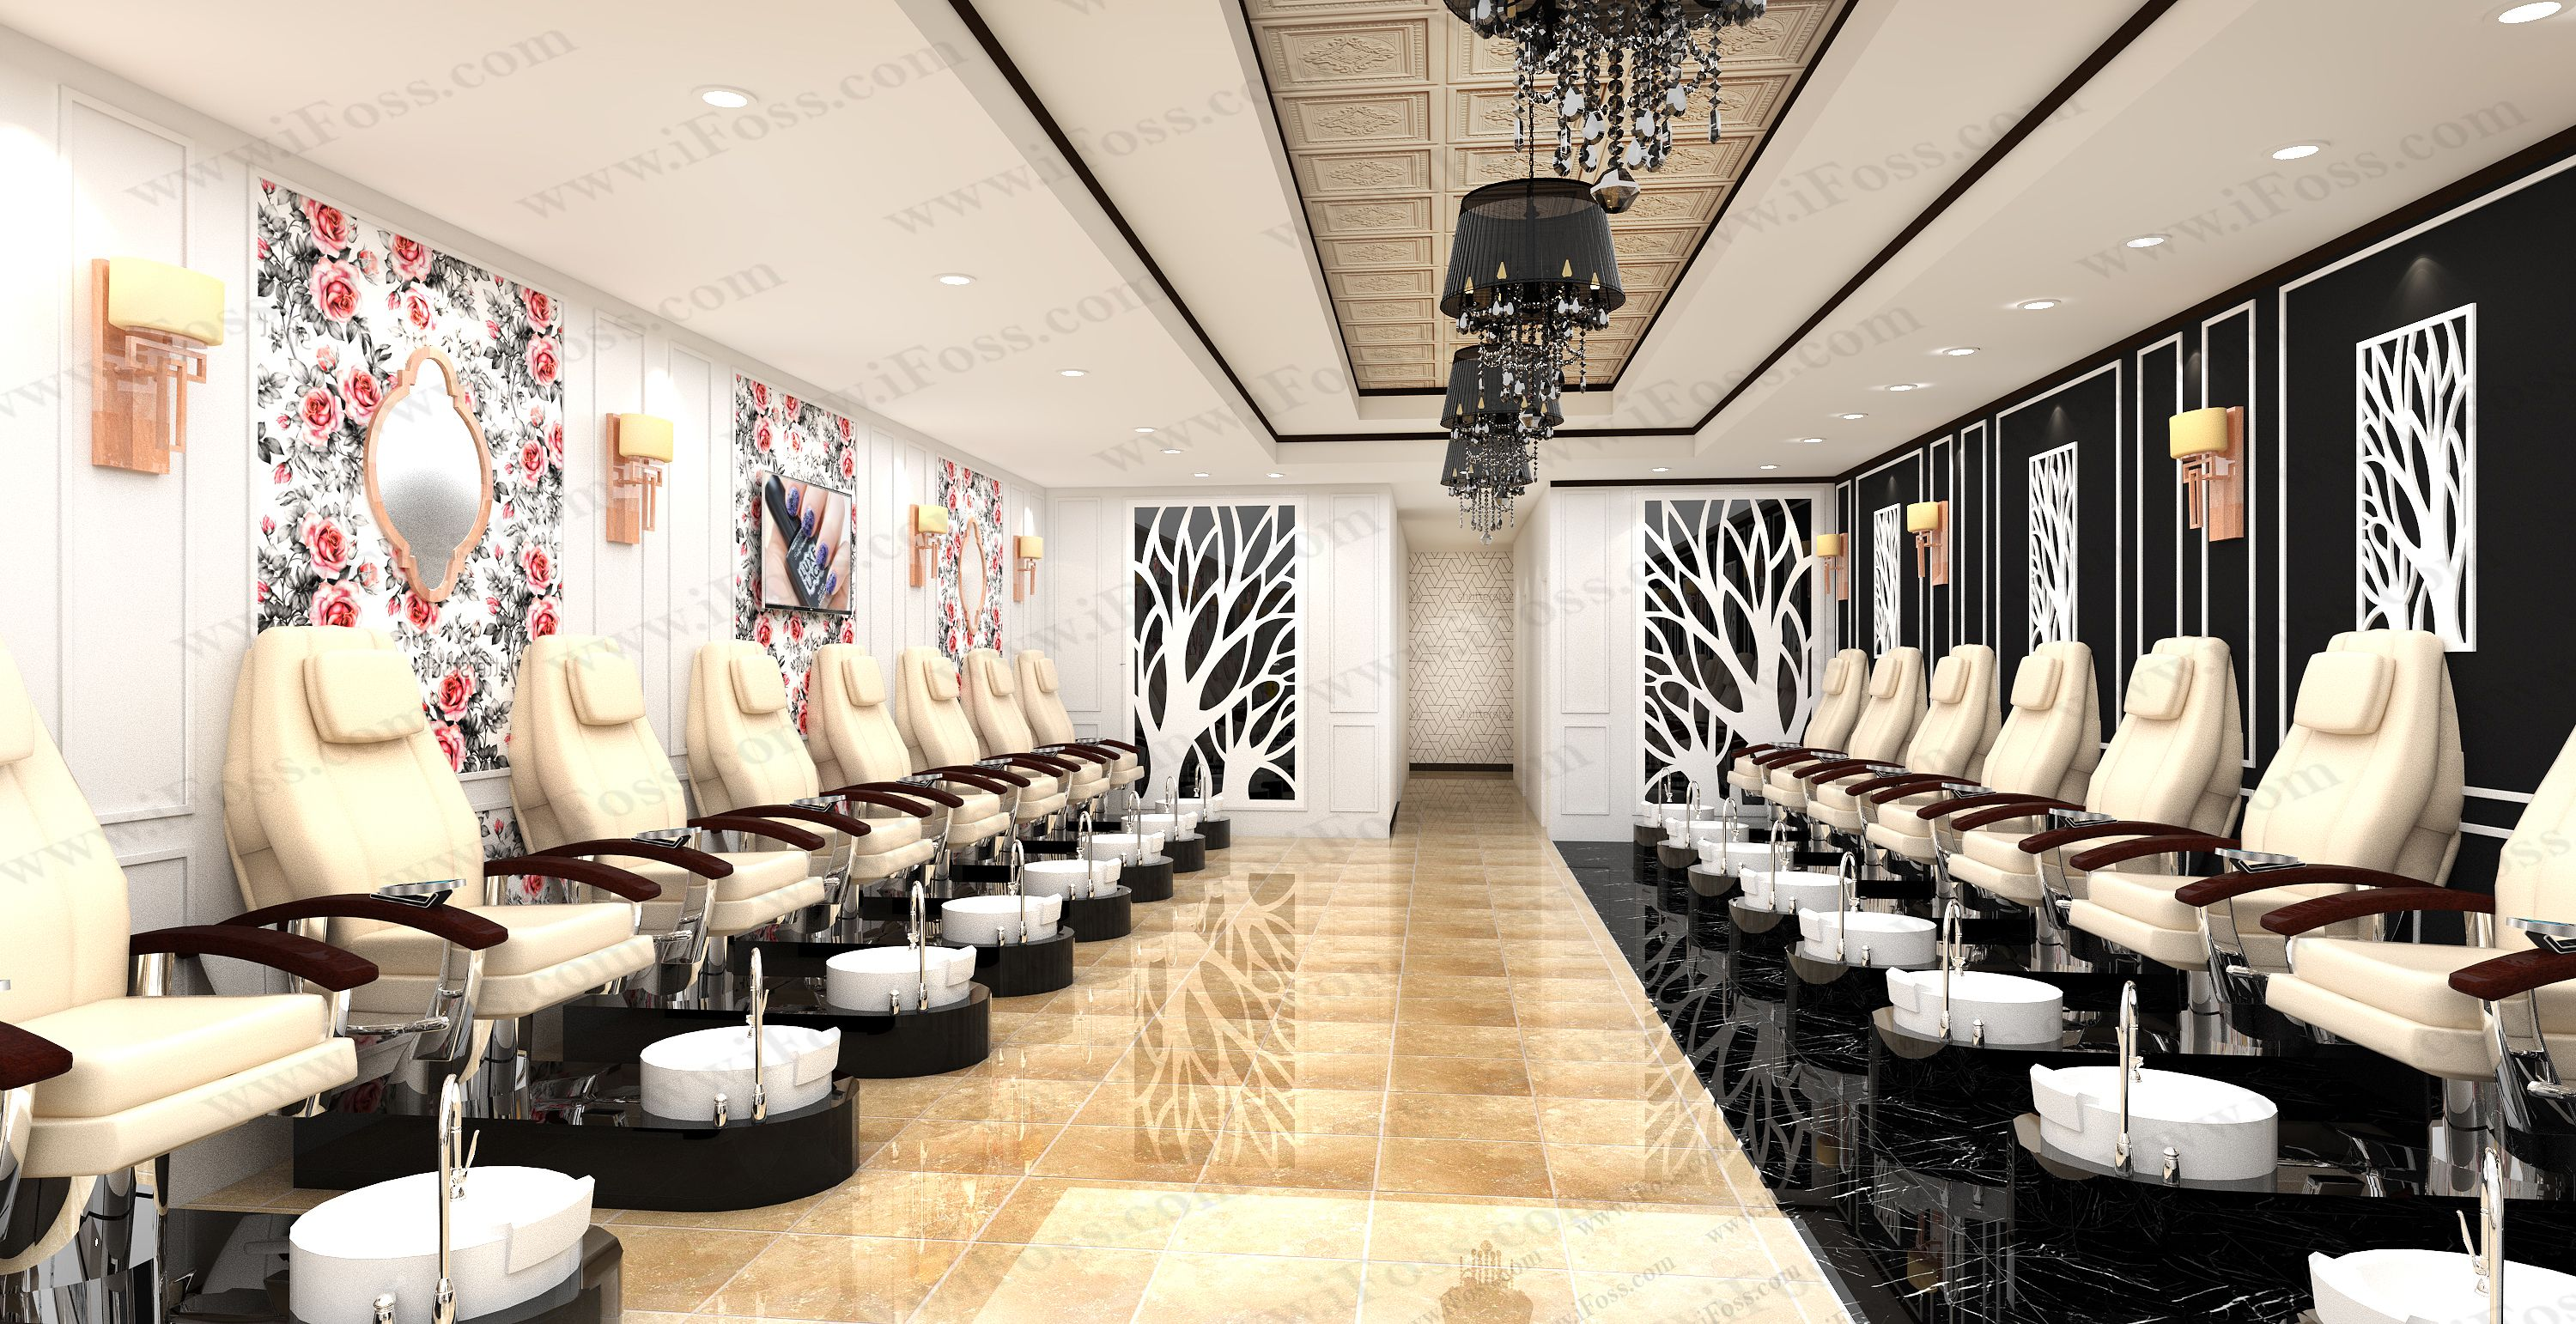 nail salon blueprint | The Nail Spa - Corporate Office - Al Barshaa ...